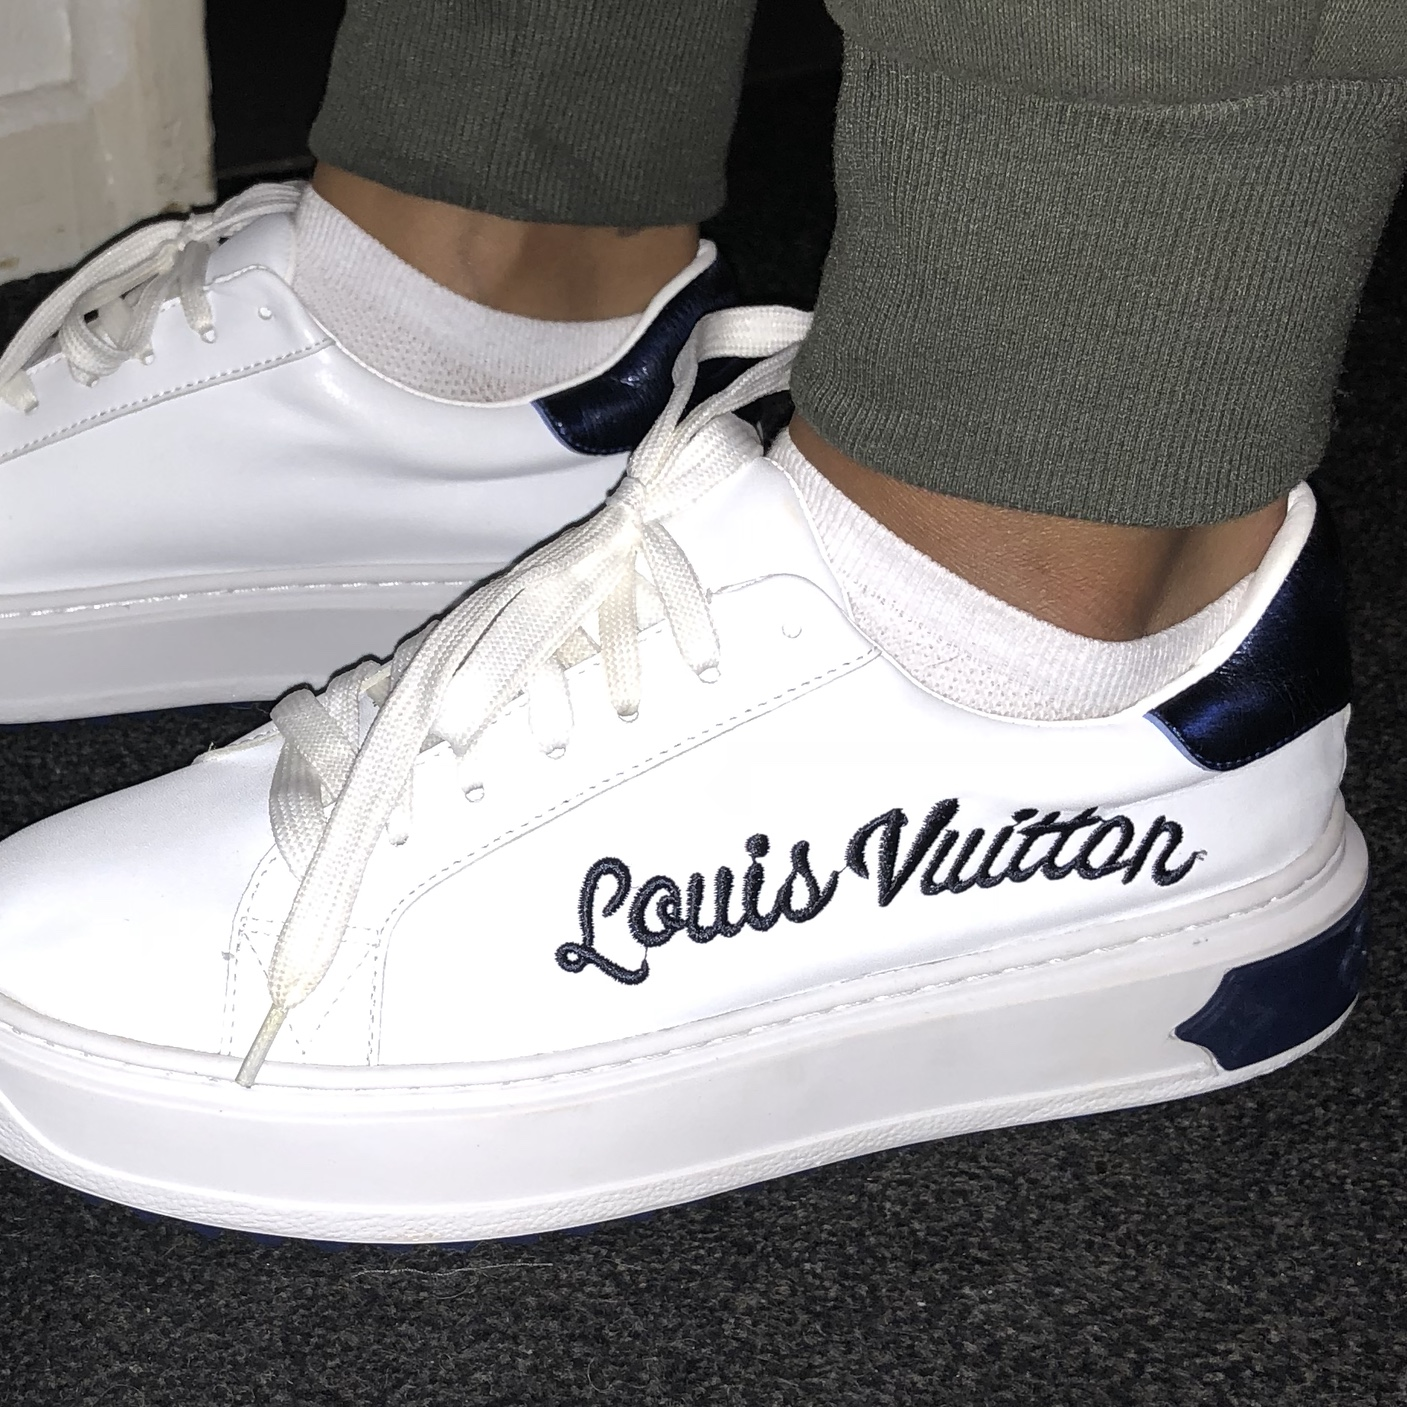 47d0ef8e50 UK Size 6 Louis Vuitton navy and white time out... - Depop